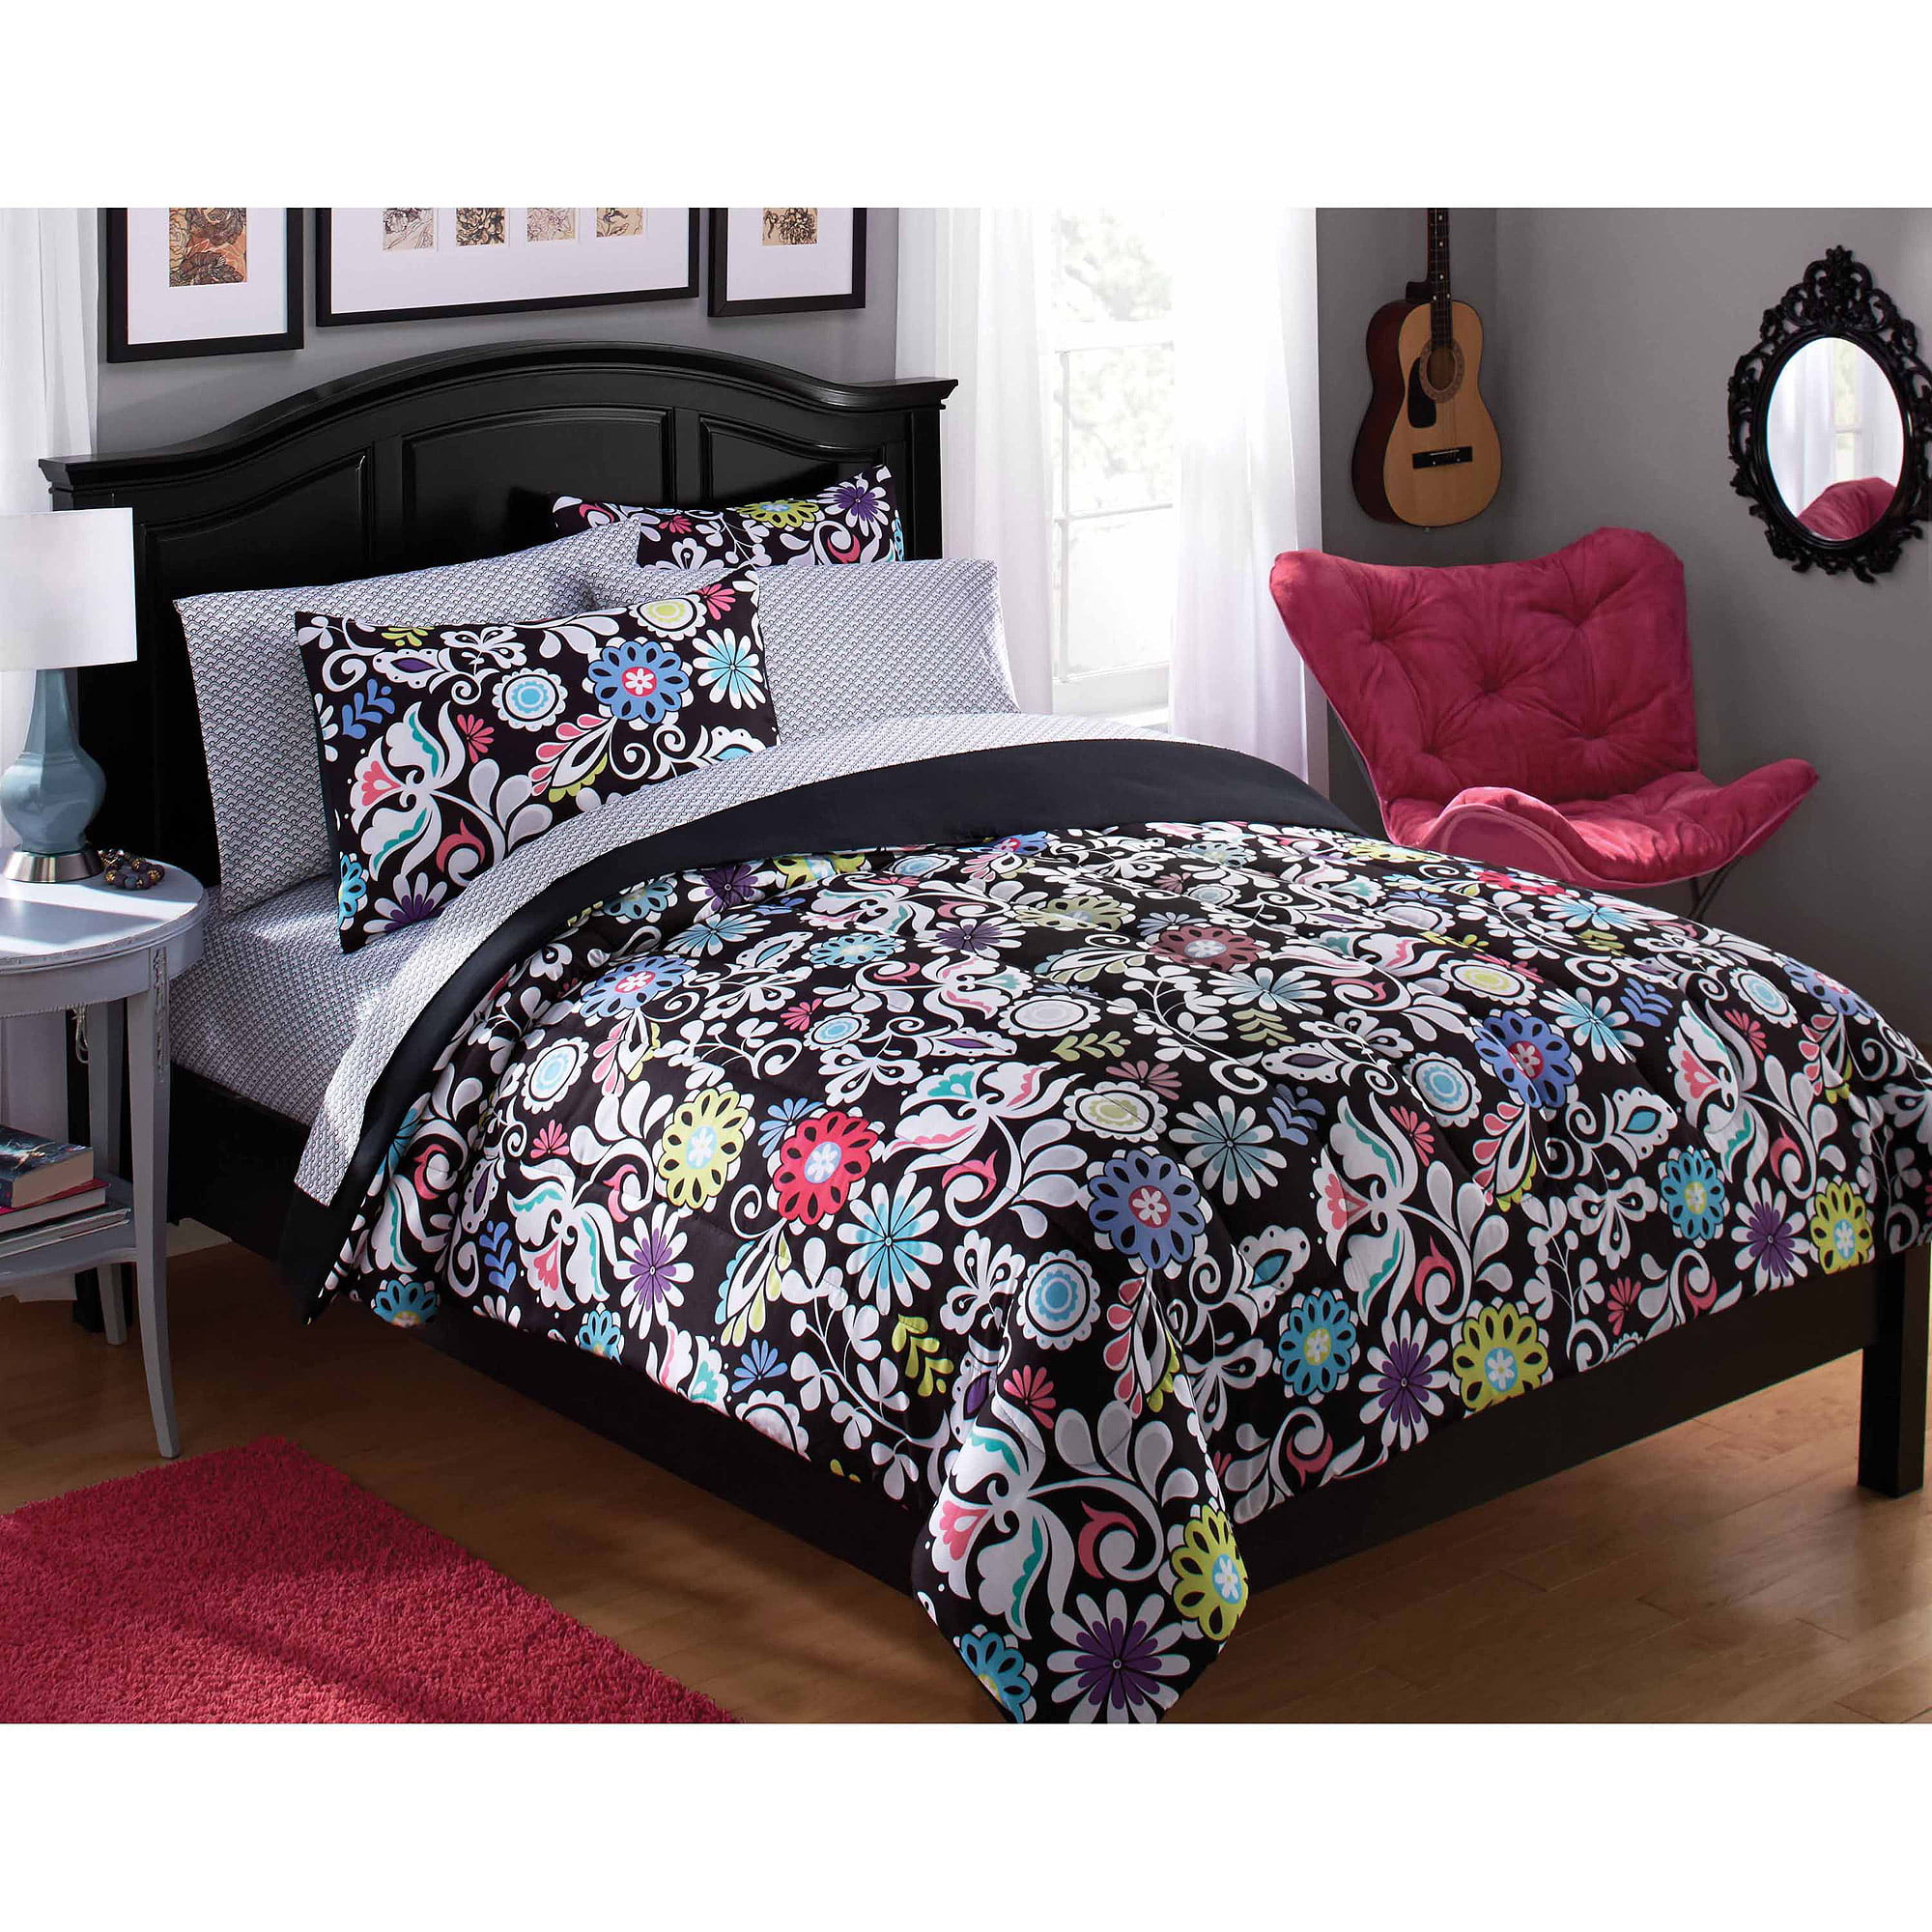 bed set sets bedding mainstays a sizable coordinating com cabin kids bag in walmart